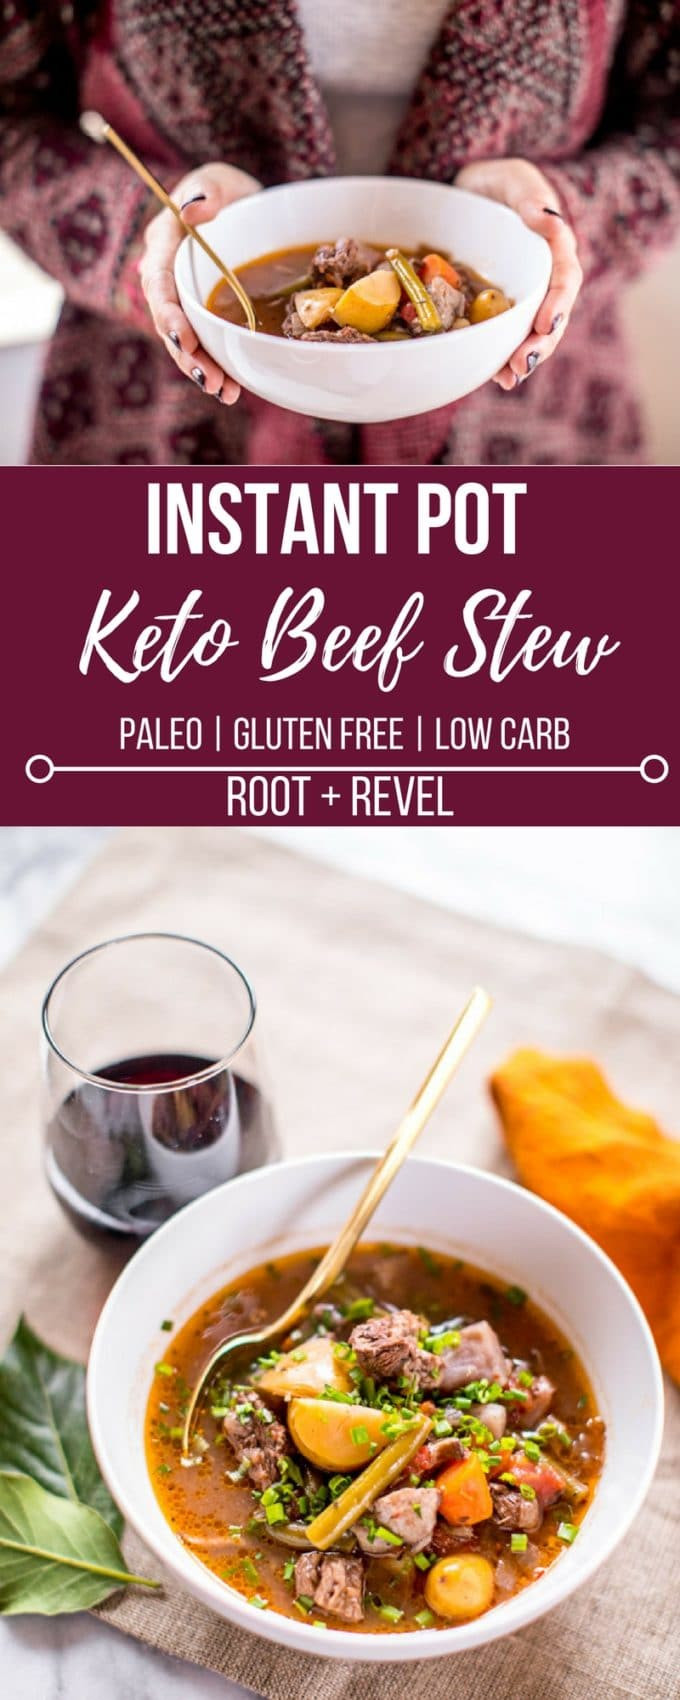 Instapot Keto Beef  Keto Beef Stew in the Instant Pot or Slow Cooker